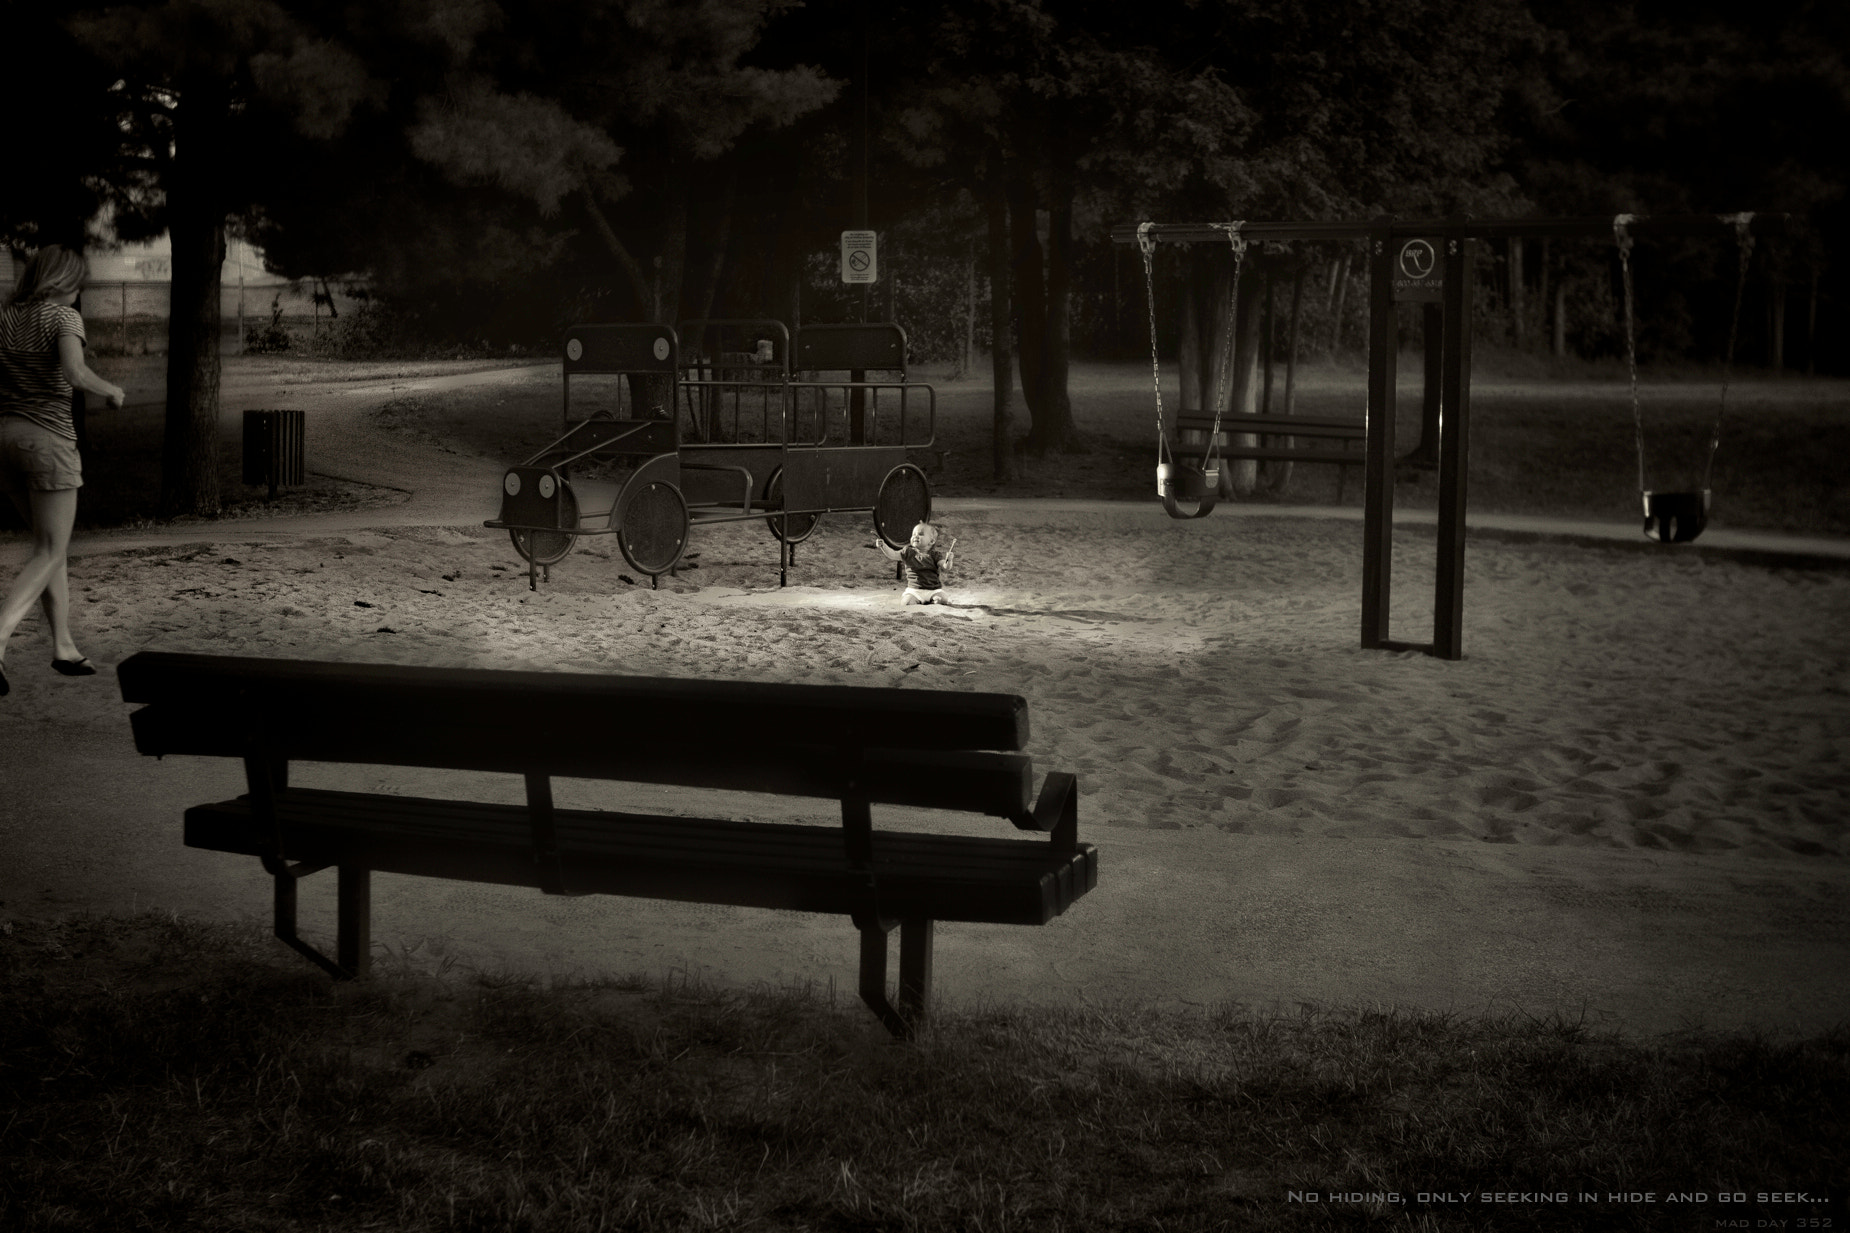 Photograph mad day 352 - no hide, just seek by kristopher chandroo on 500px